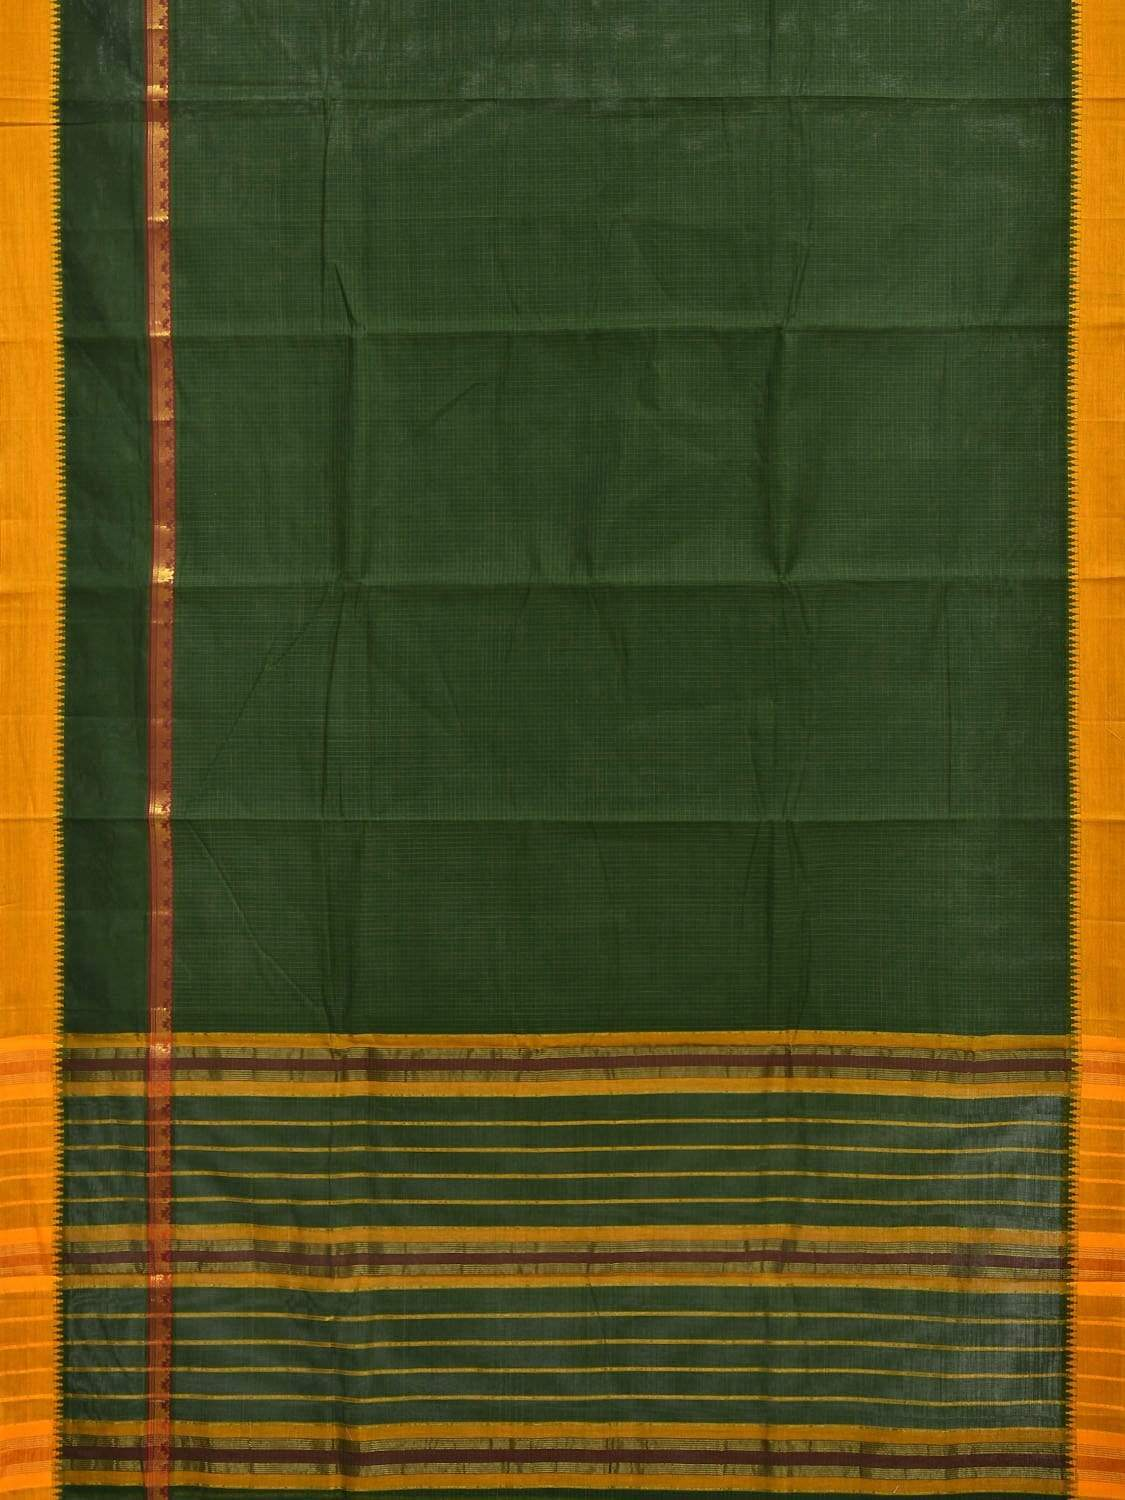 Green Narayanpet Cotton Handloom Saree with Checks and One Side Big Border Design No Blouse np0255